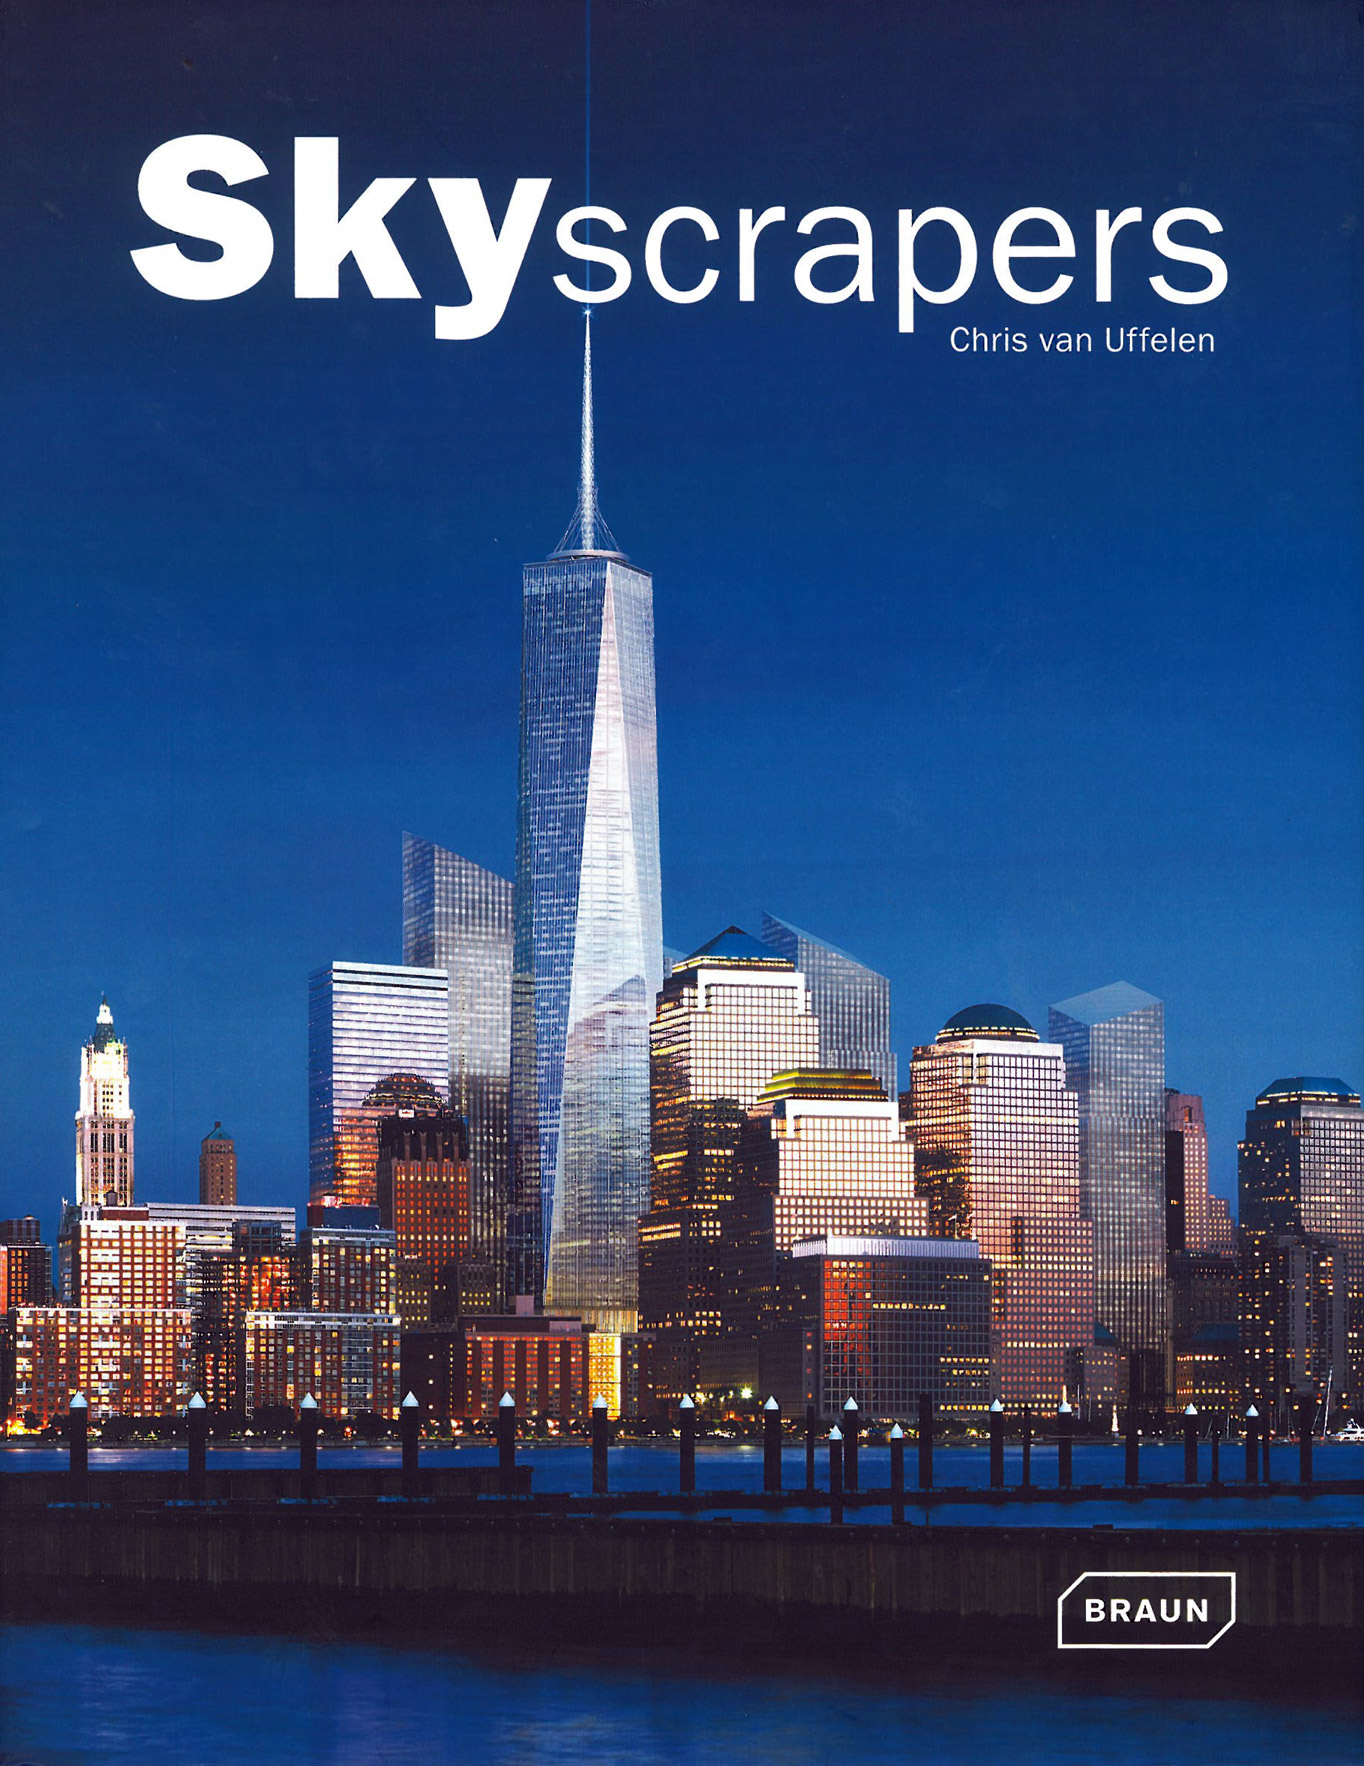 Braun Skyscrapers for NLF